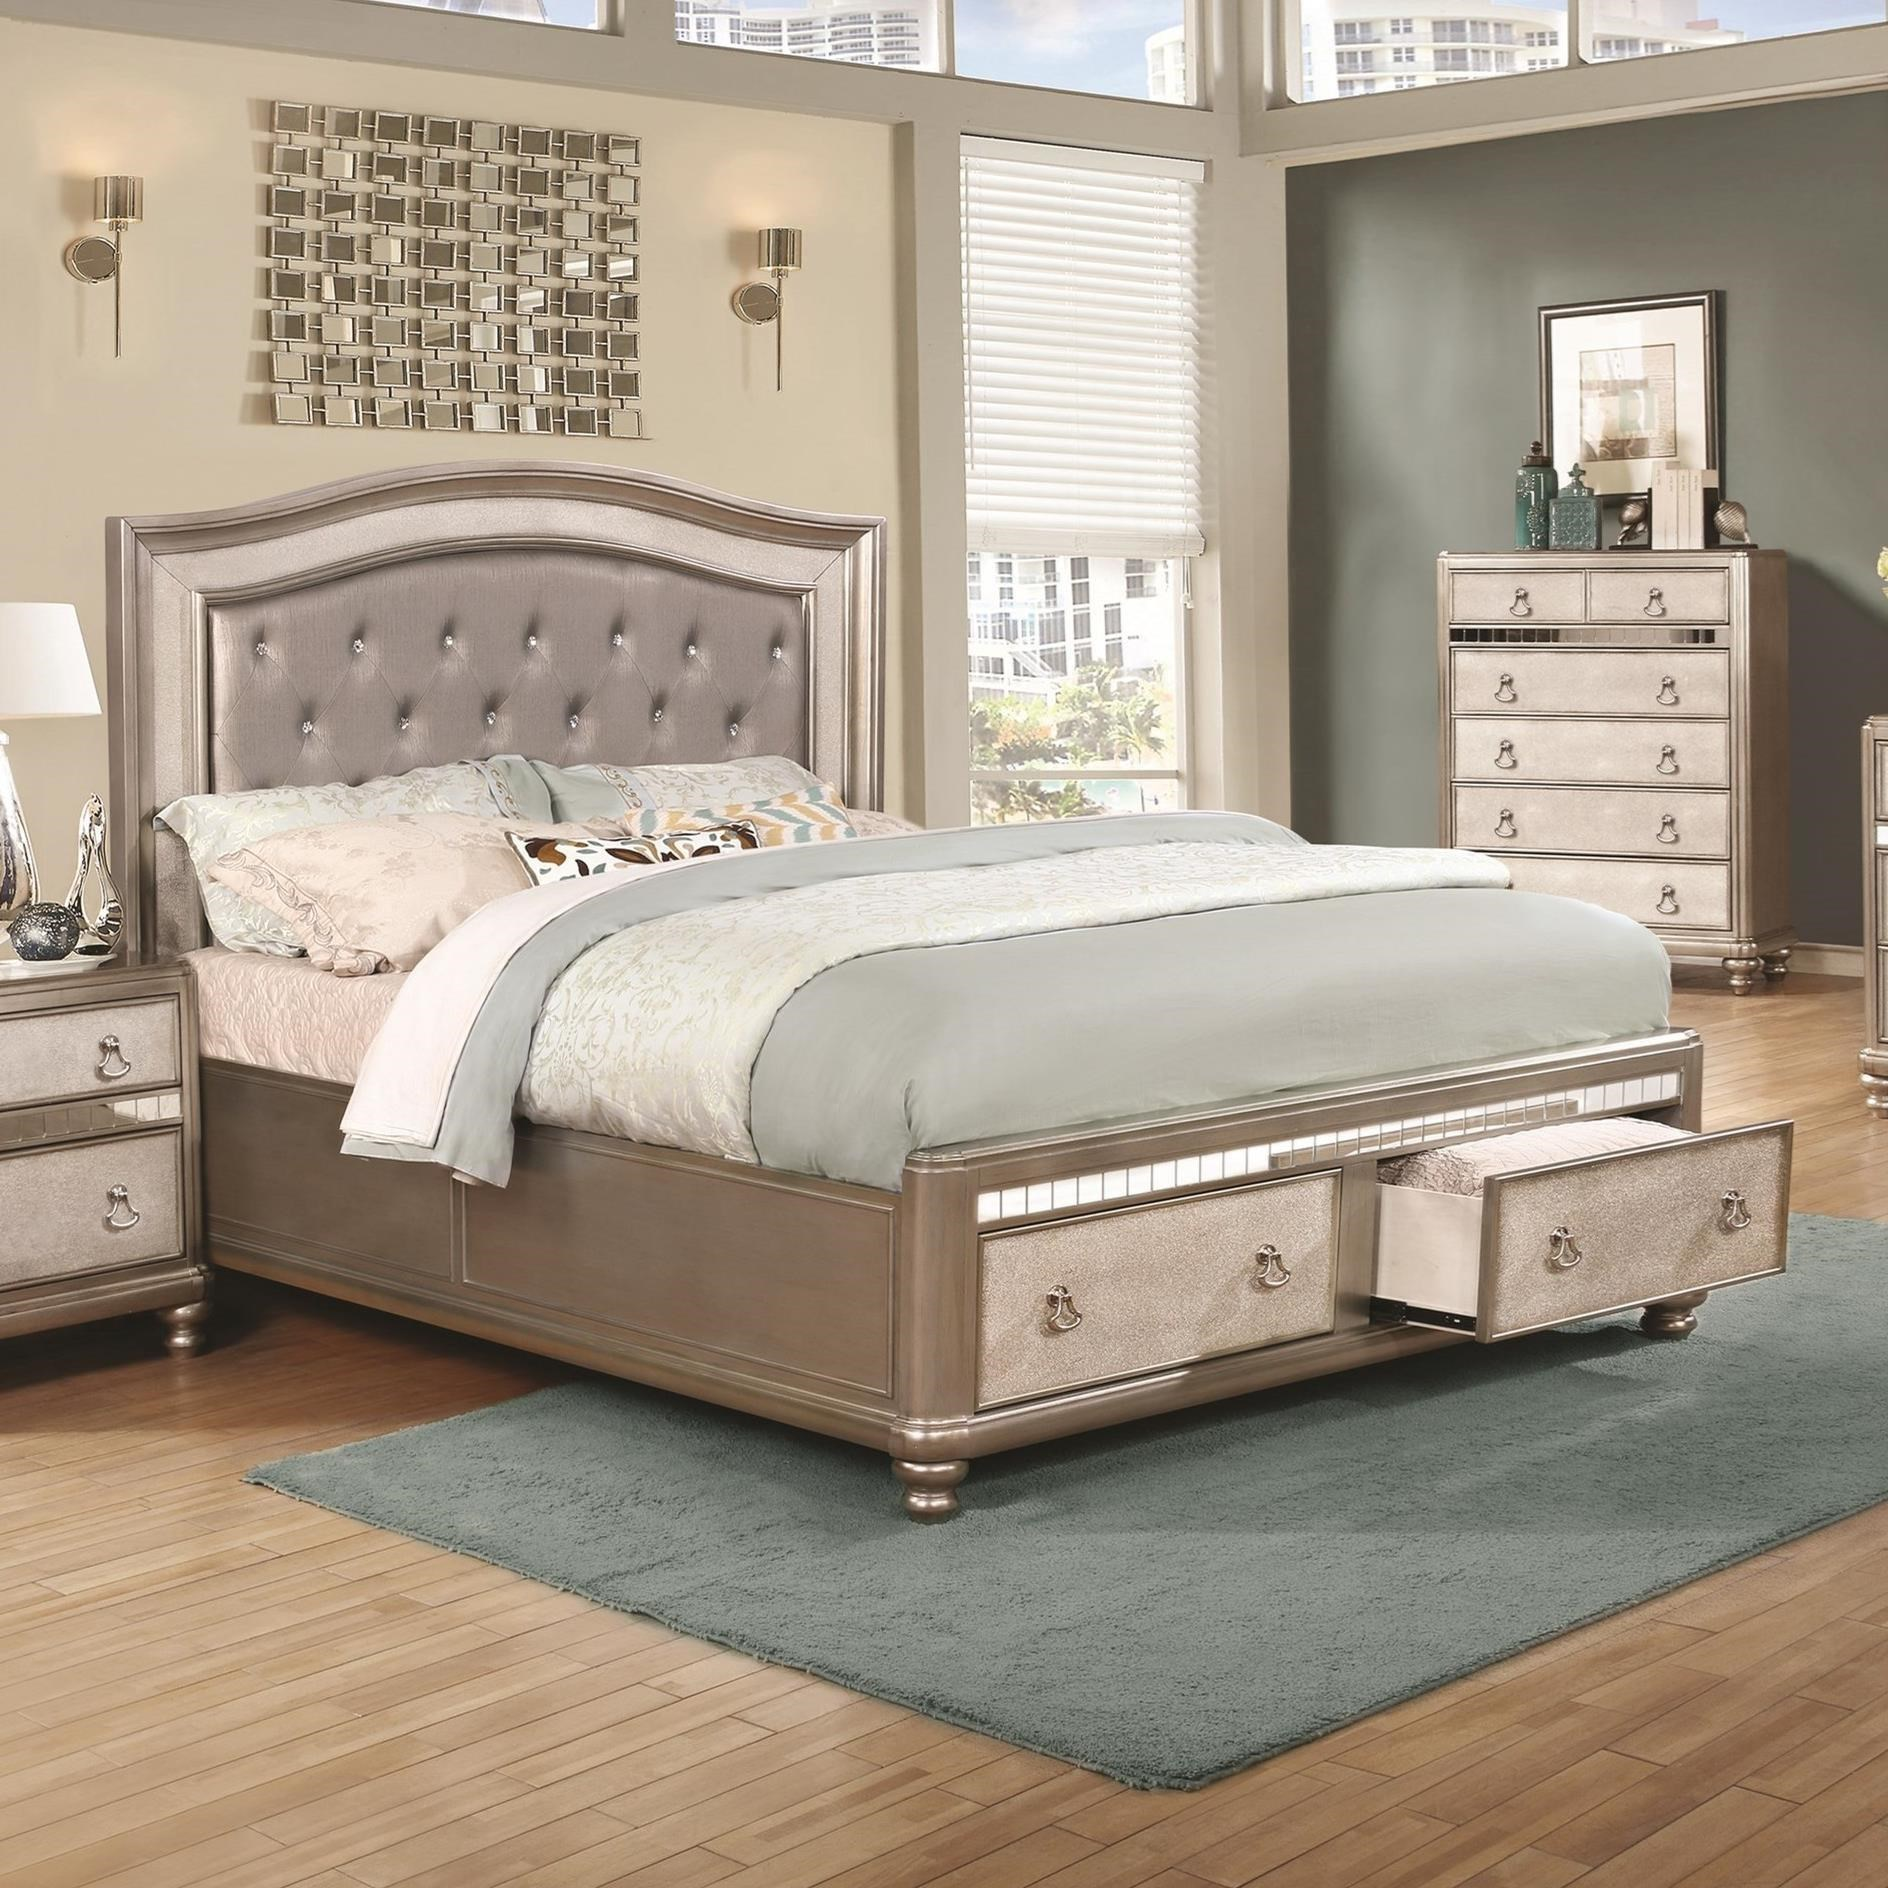 Bling Game Upholstered Queen Bed by Coaster at Northeast Factory Direct